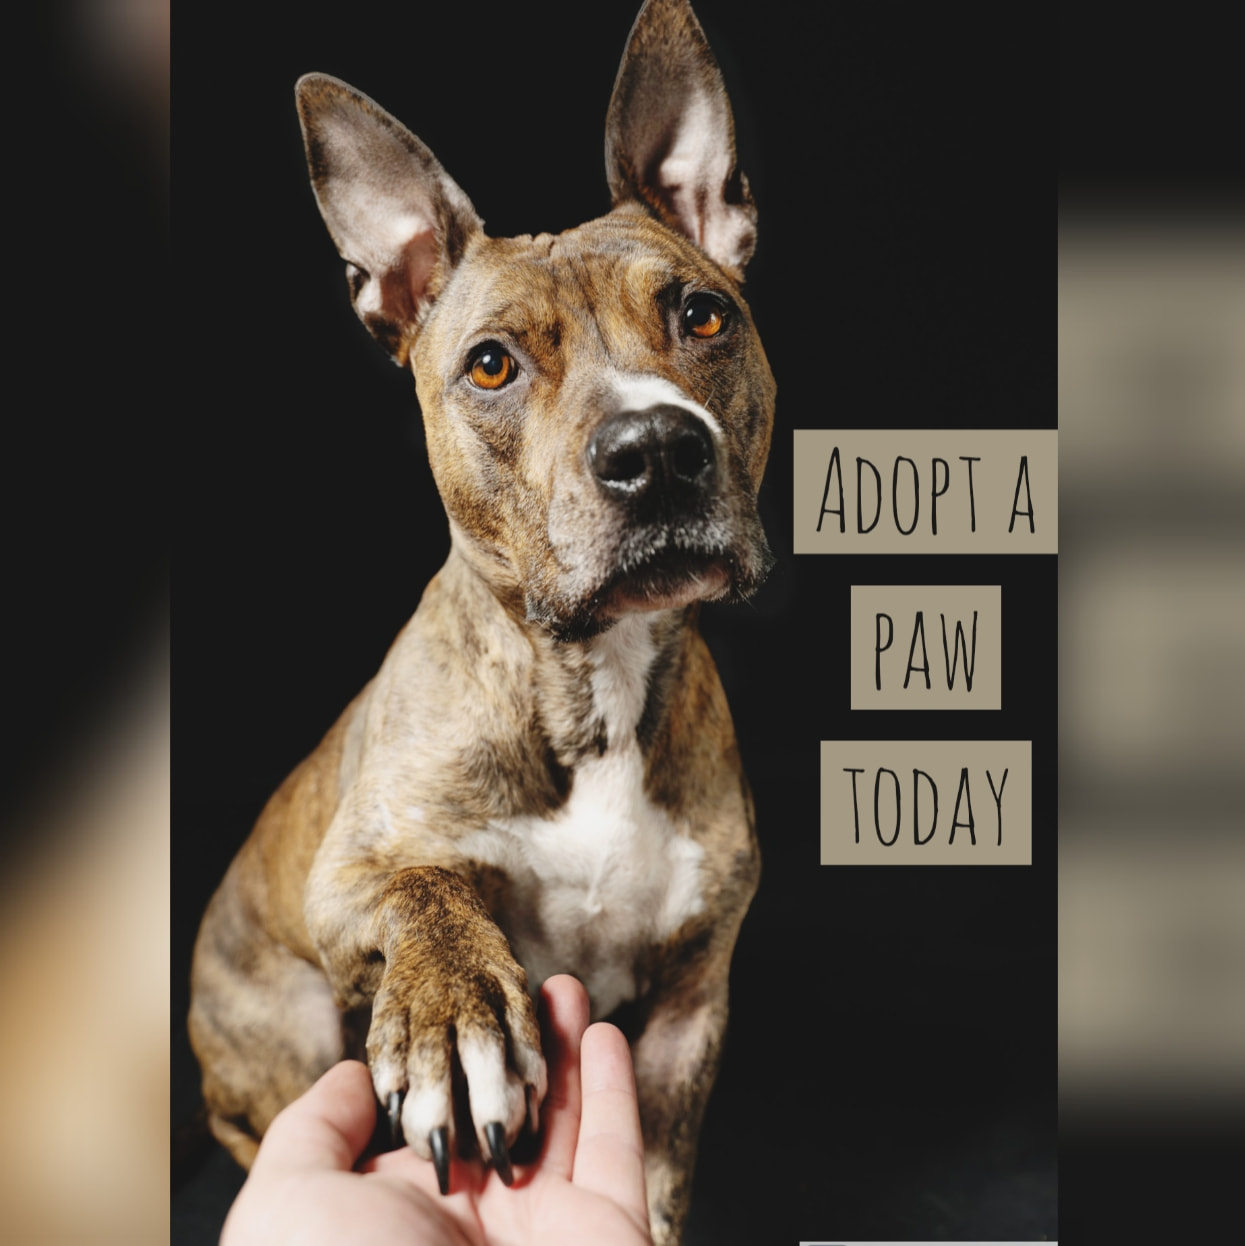 adopt a paw today